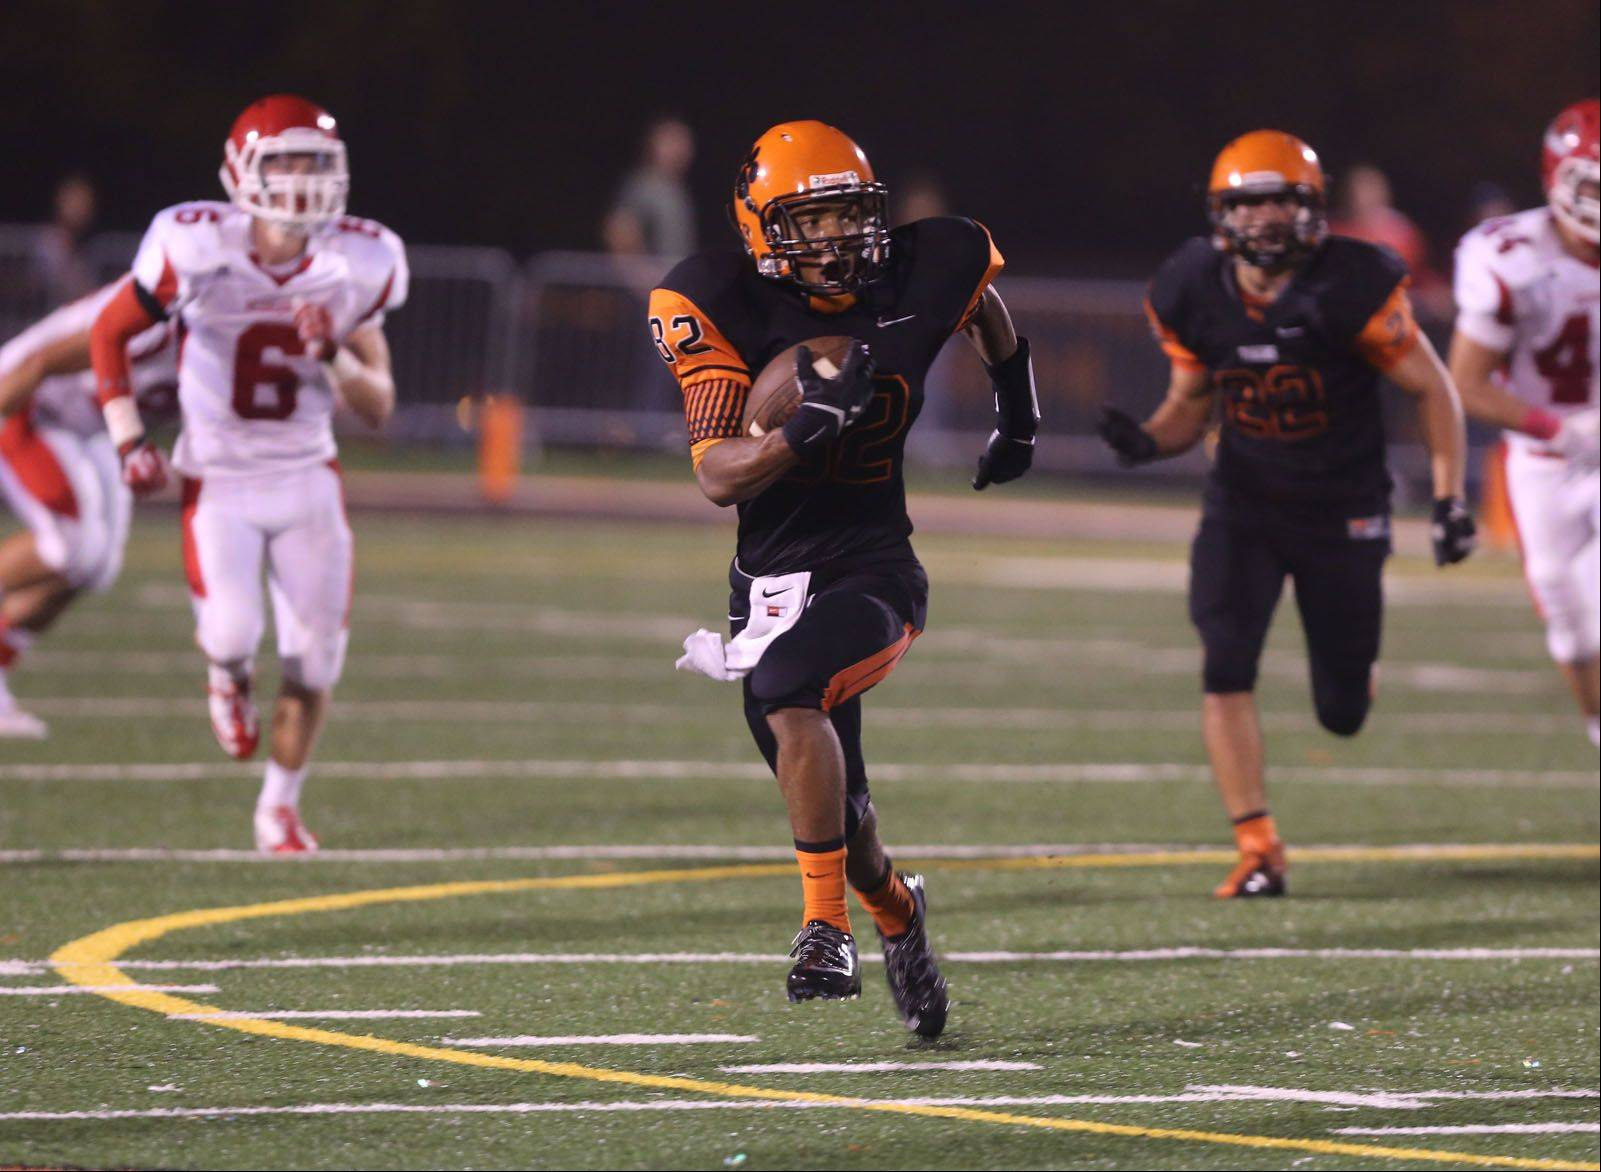 Wheaton Warrenville South�s Keishawn Watson returns a punt against Naperville Central Friday night.